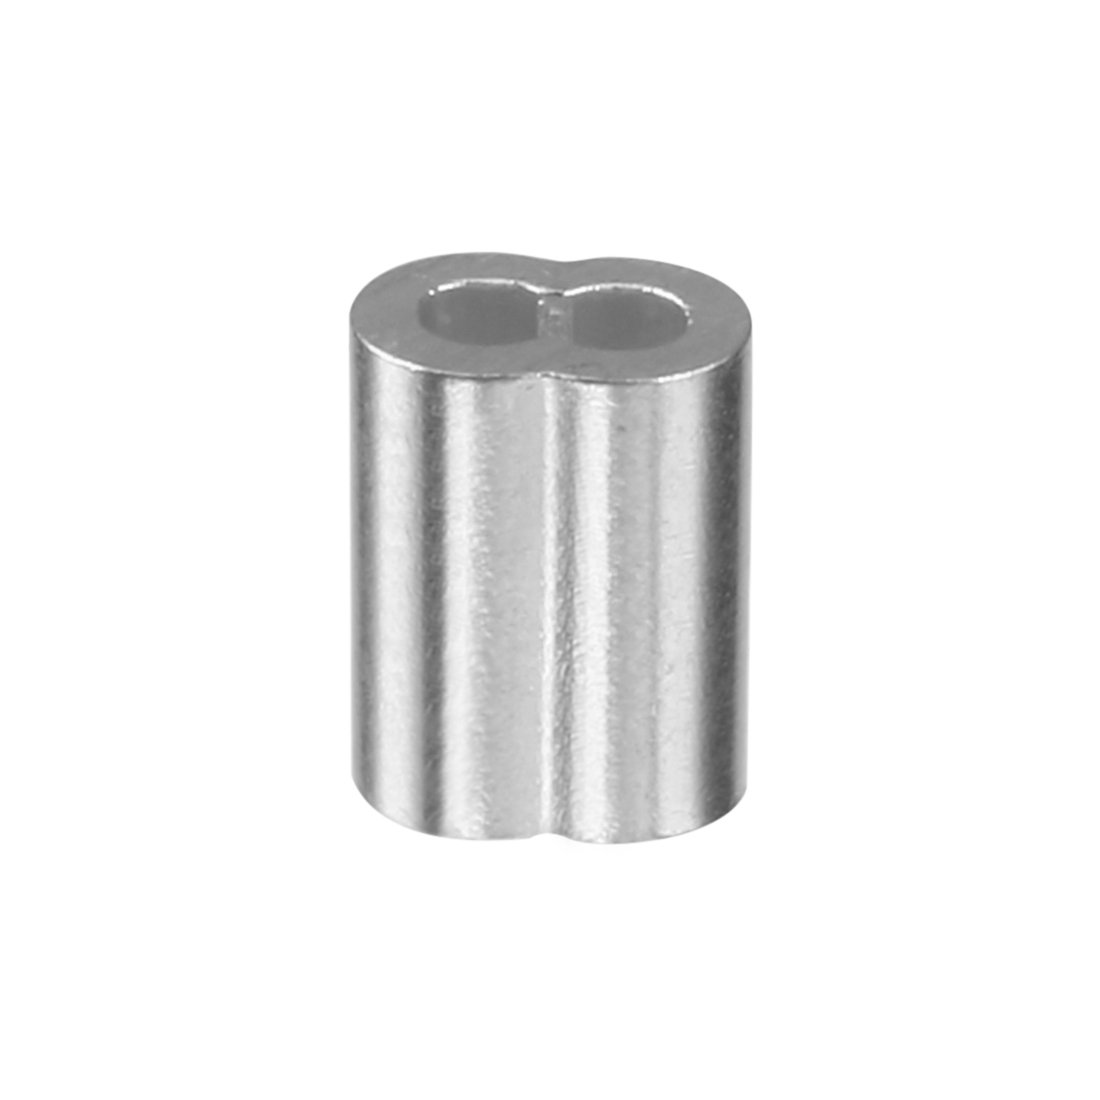 uxcell 0.04 inch (1mm) Diameter Wire Rope Aluminum Sleeves Clip ...